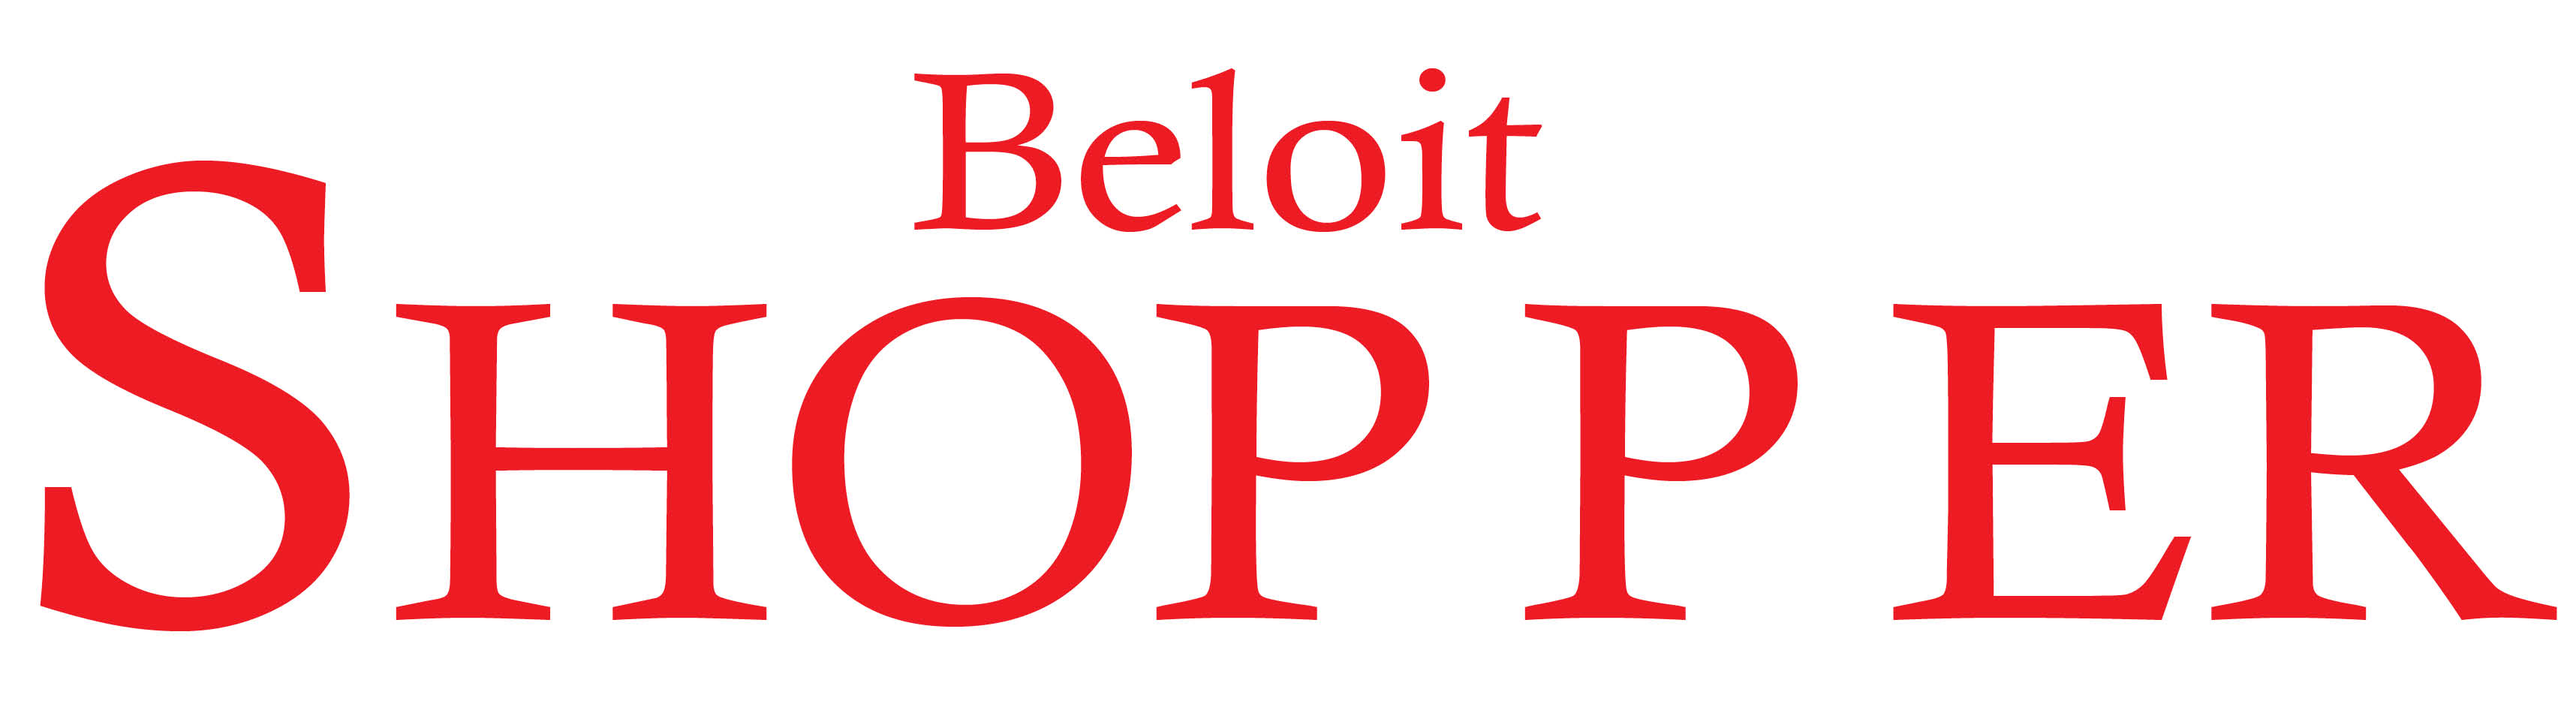 2/15/18 Beloit Shopper